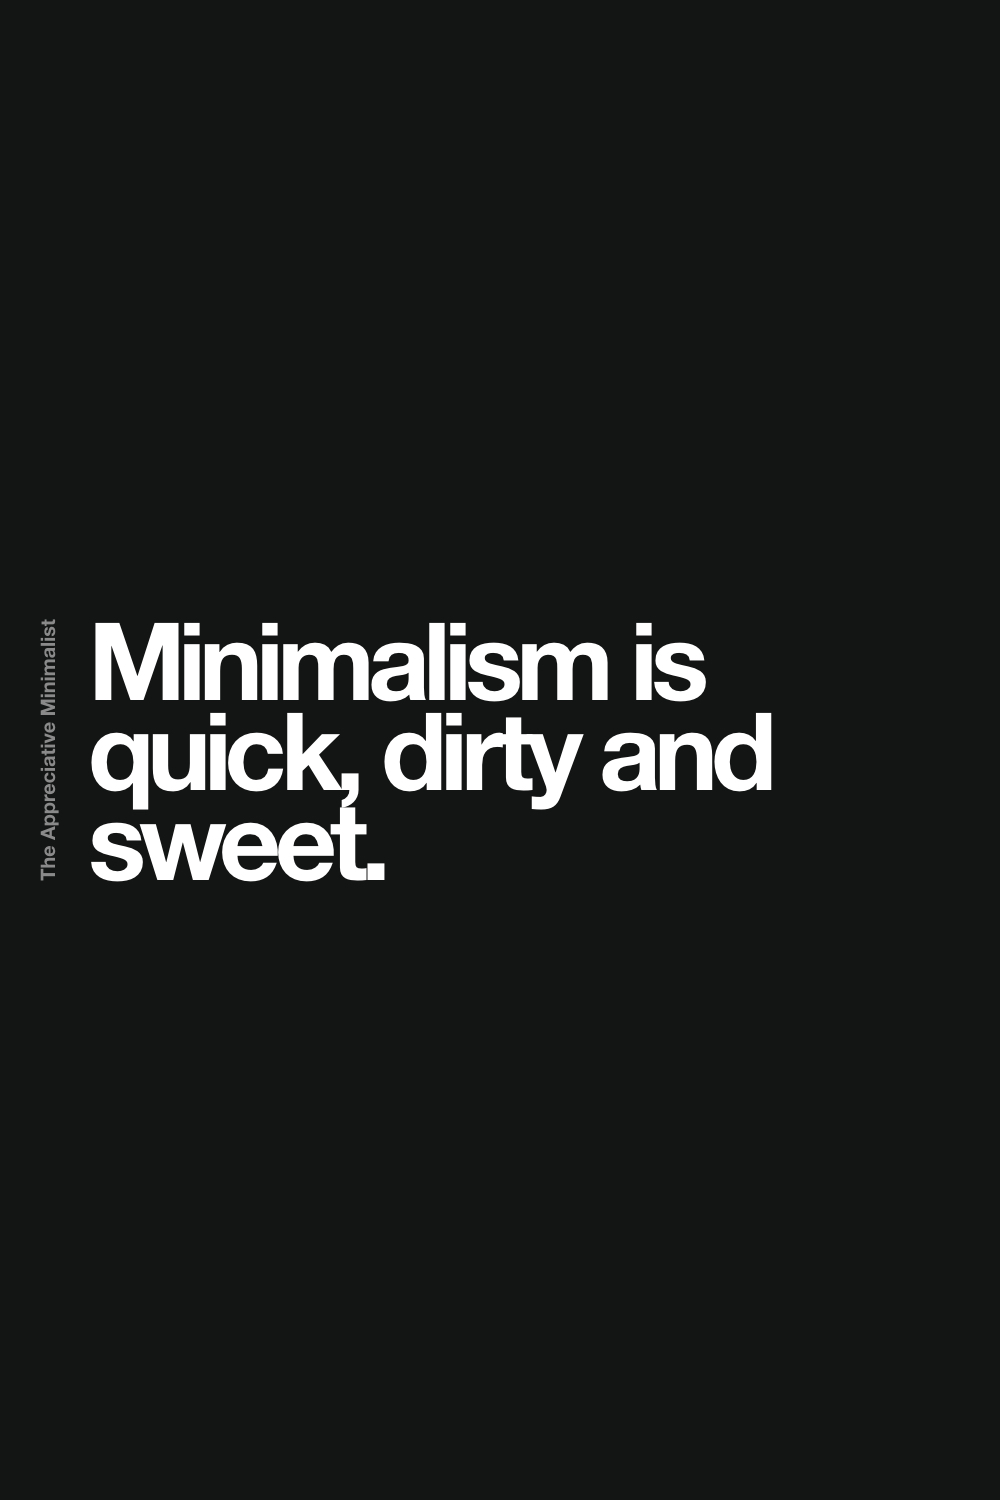 Minimalism is quick, dirty and sweet.